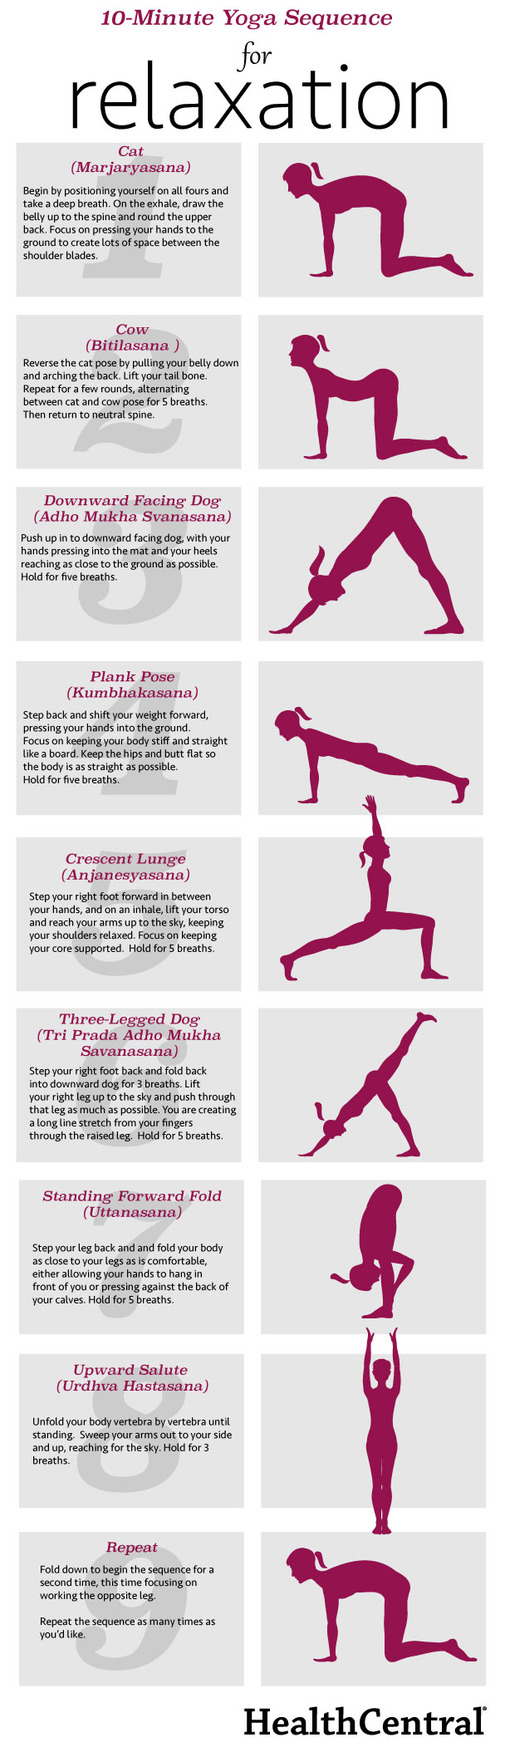 Yoga Sequence for Relaxation